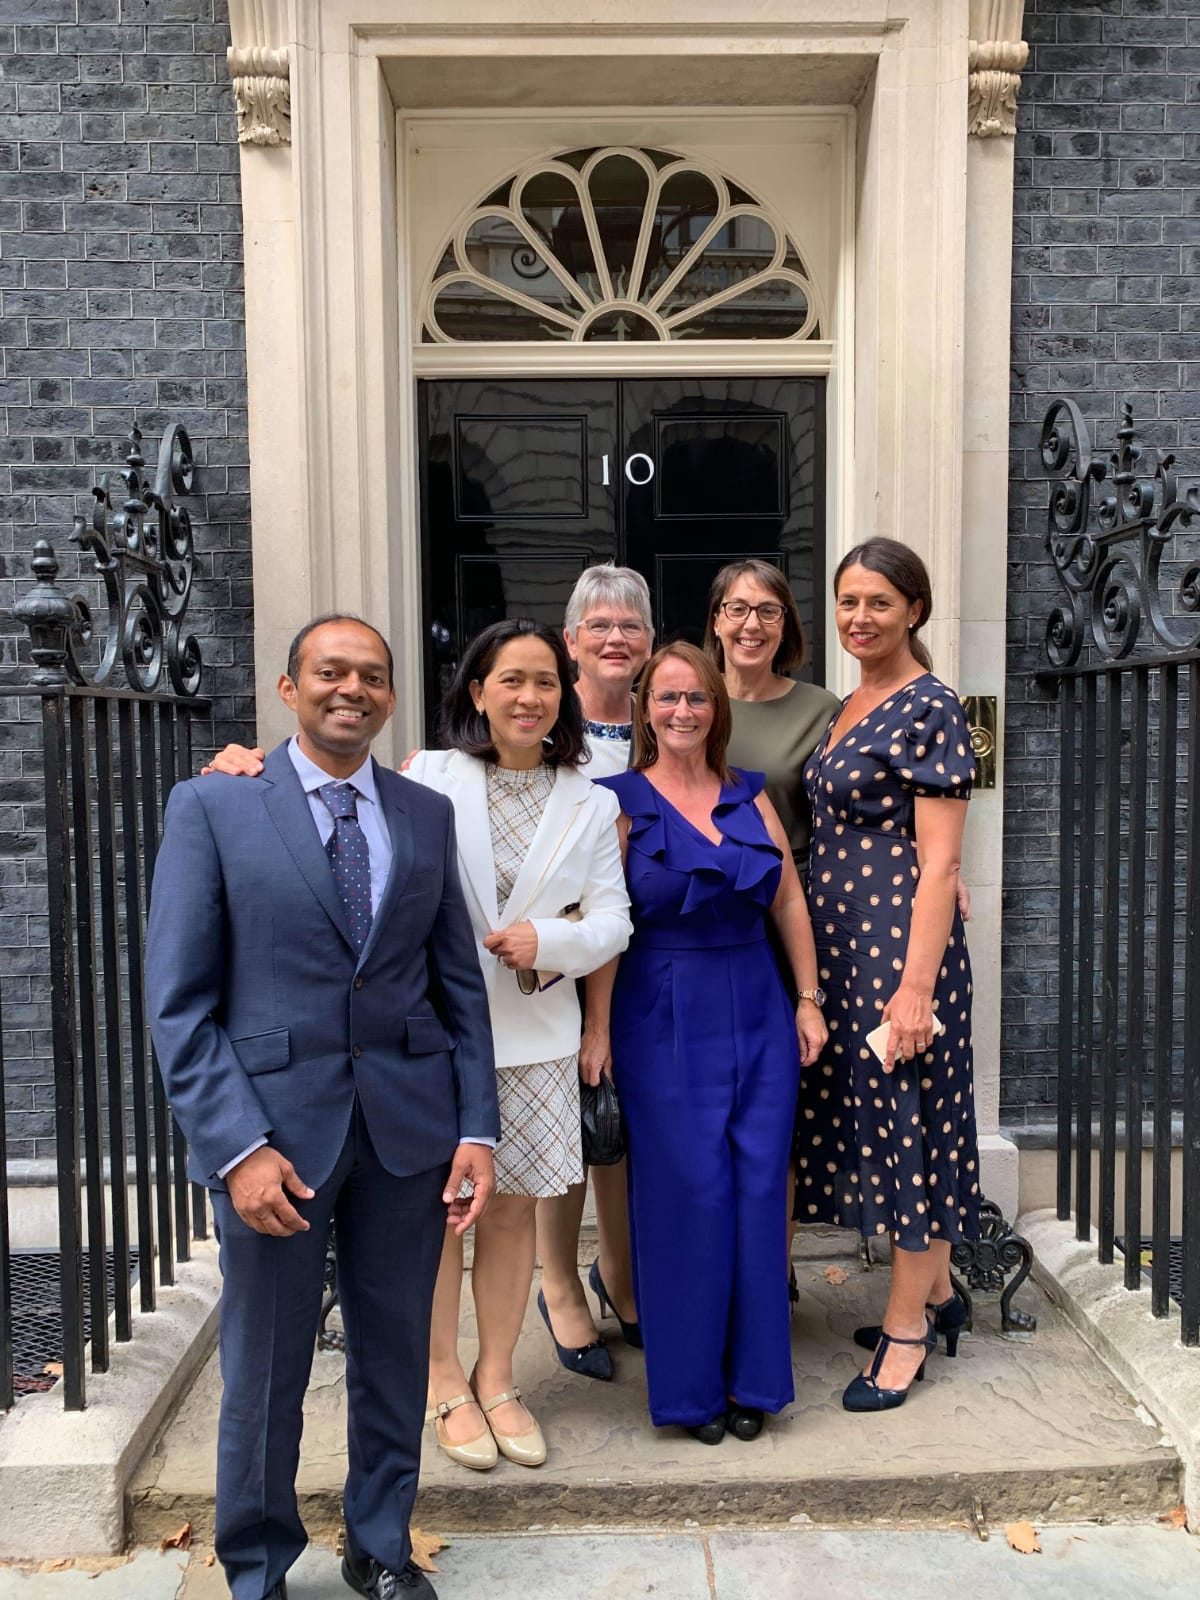 Our staff who visited 10 Downing Street.(Left to right) Vivek Rajagopal, Marilou Franco, Helen Ballam, Ali Devlin, Gylda Nunn and Sue Deakin.